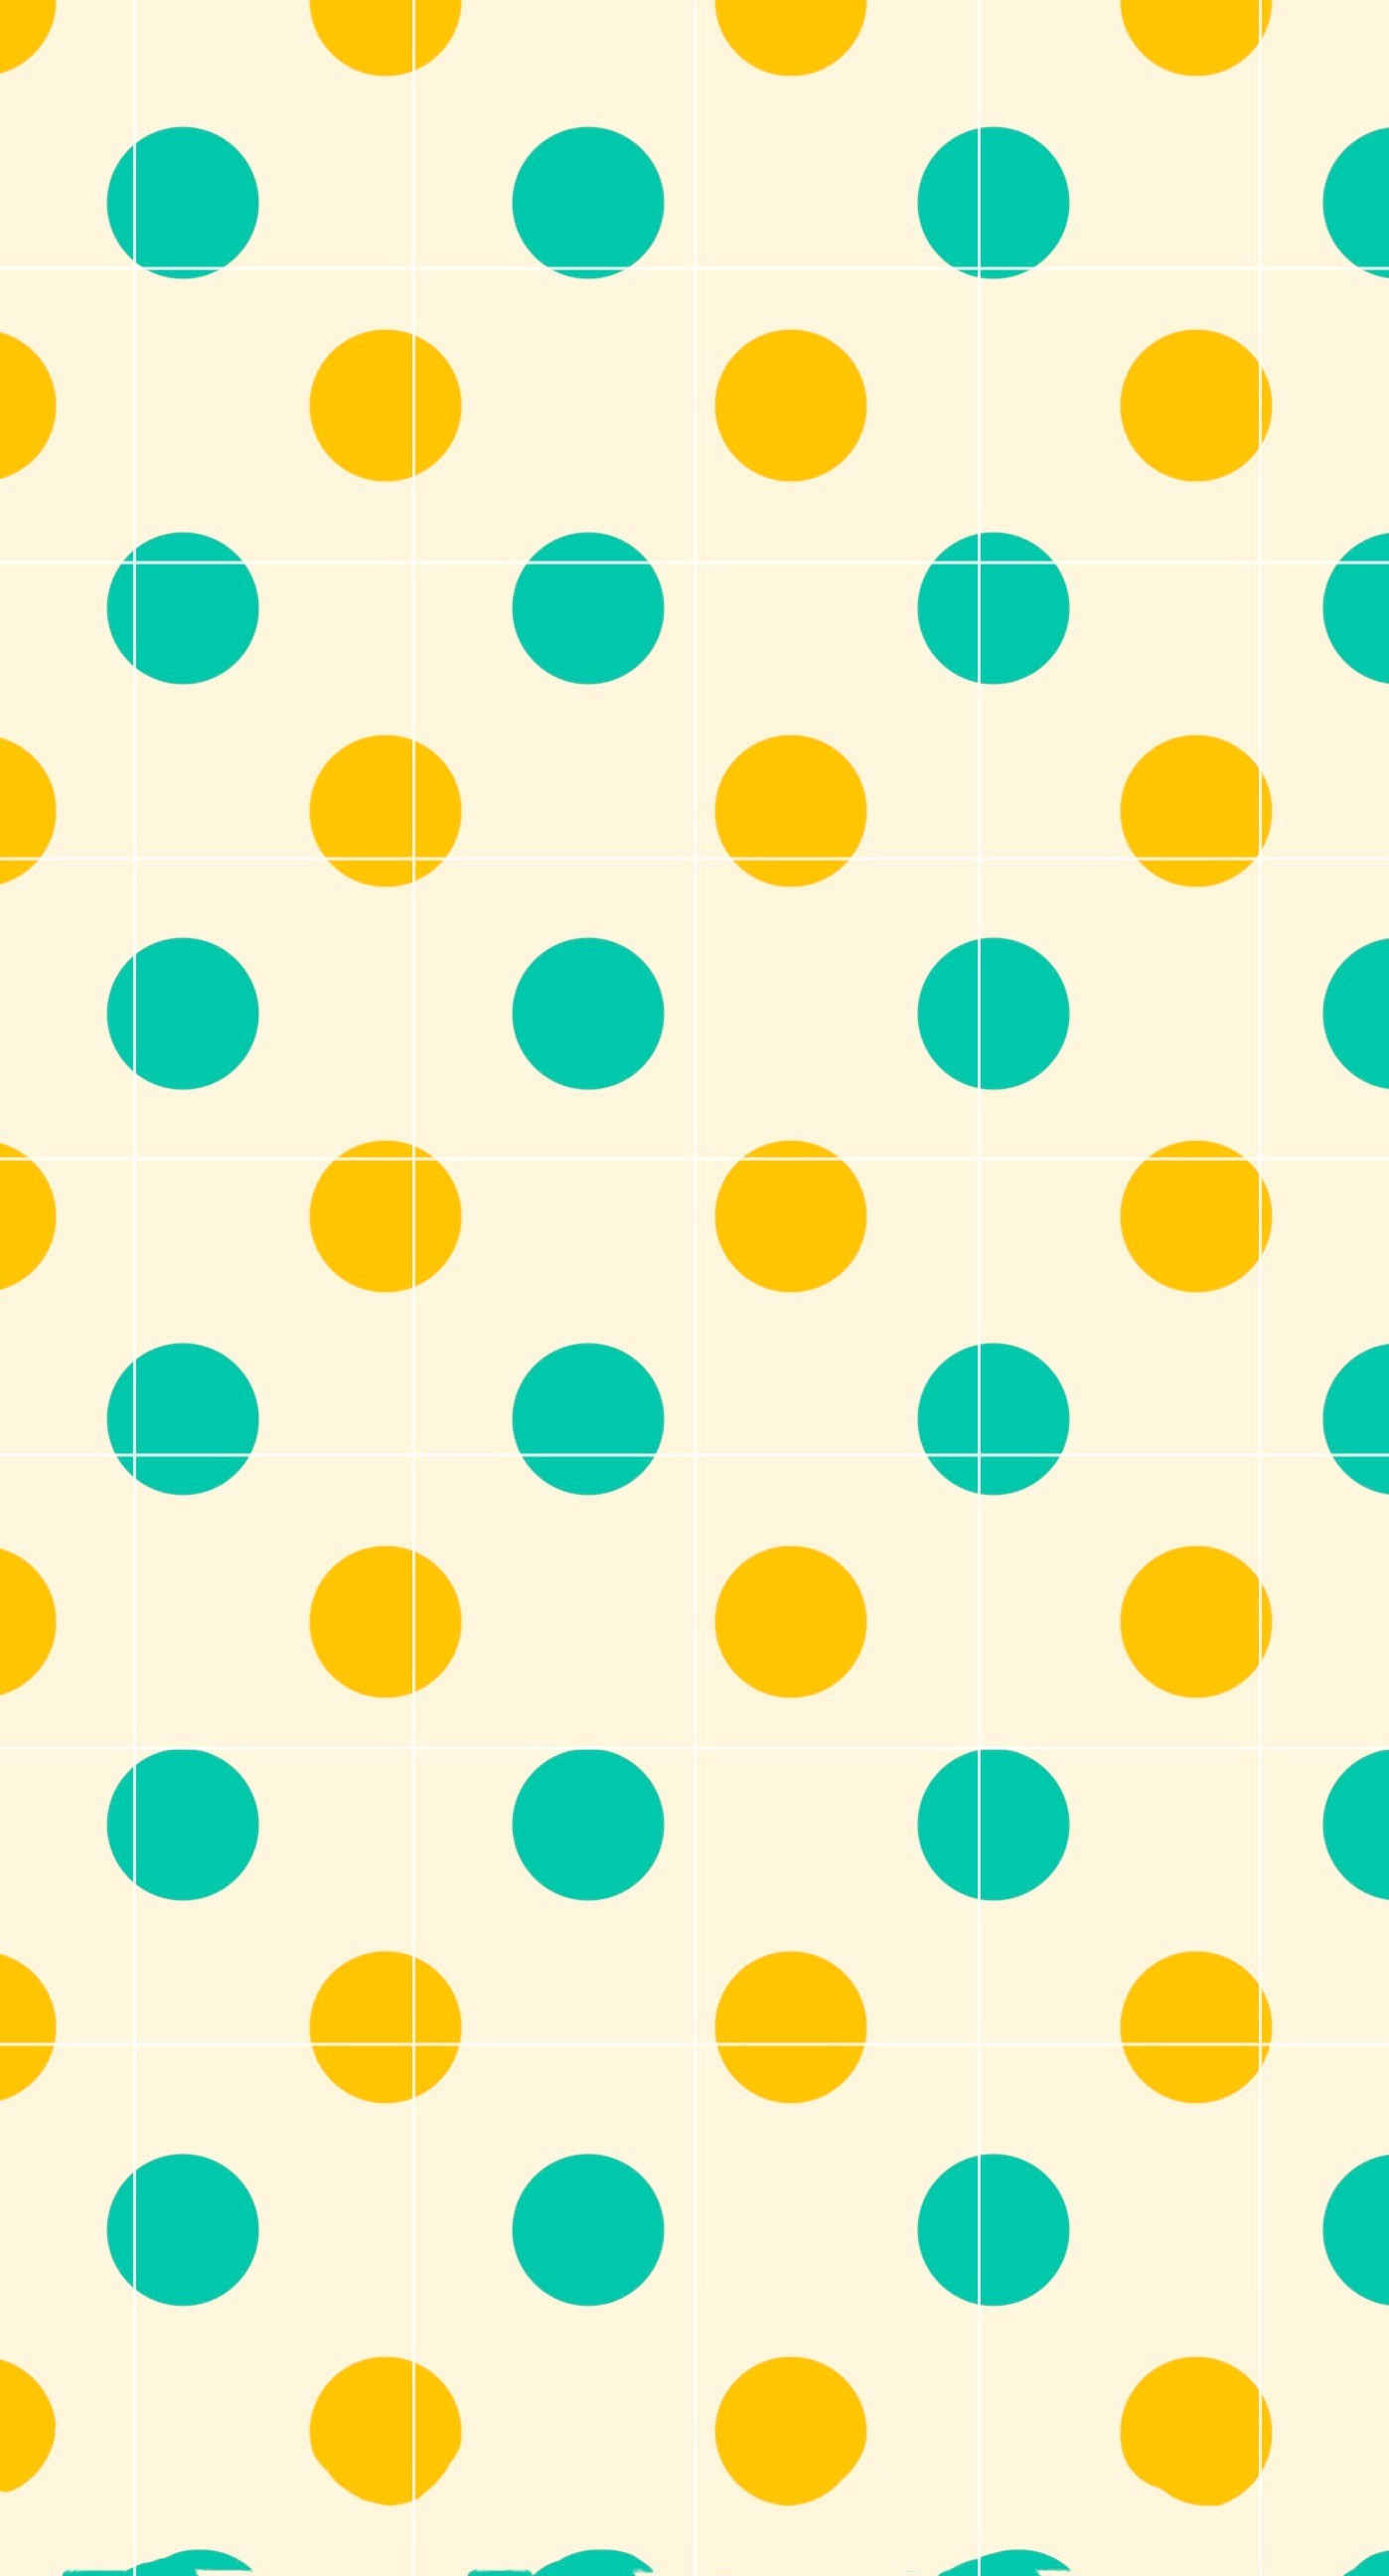 Iphone 5 Wallpaper Shelf Cute Polka Dot Wallpaper 183 ① Download Free Cool High Resolution